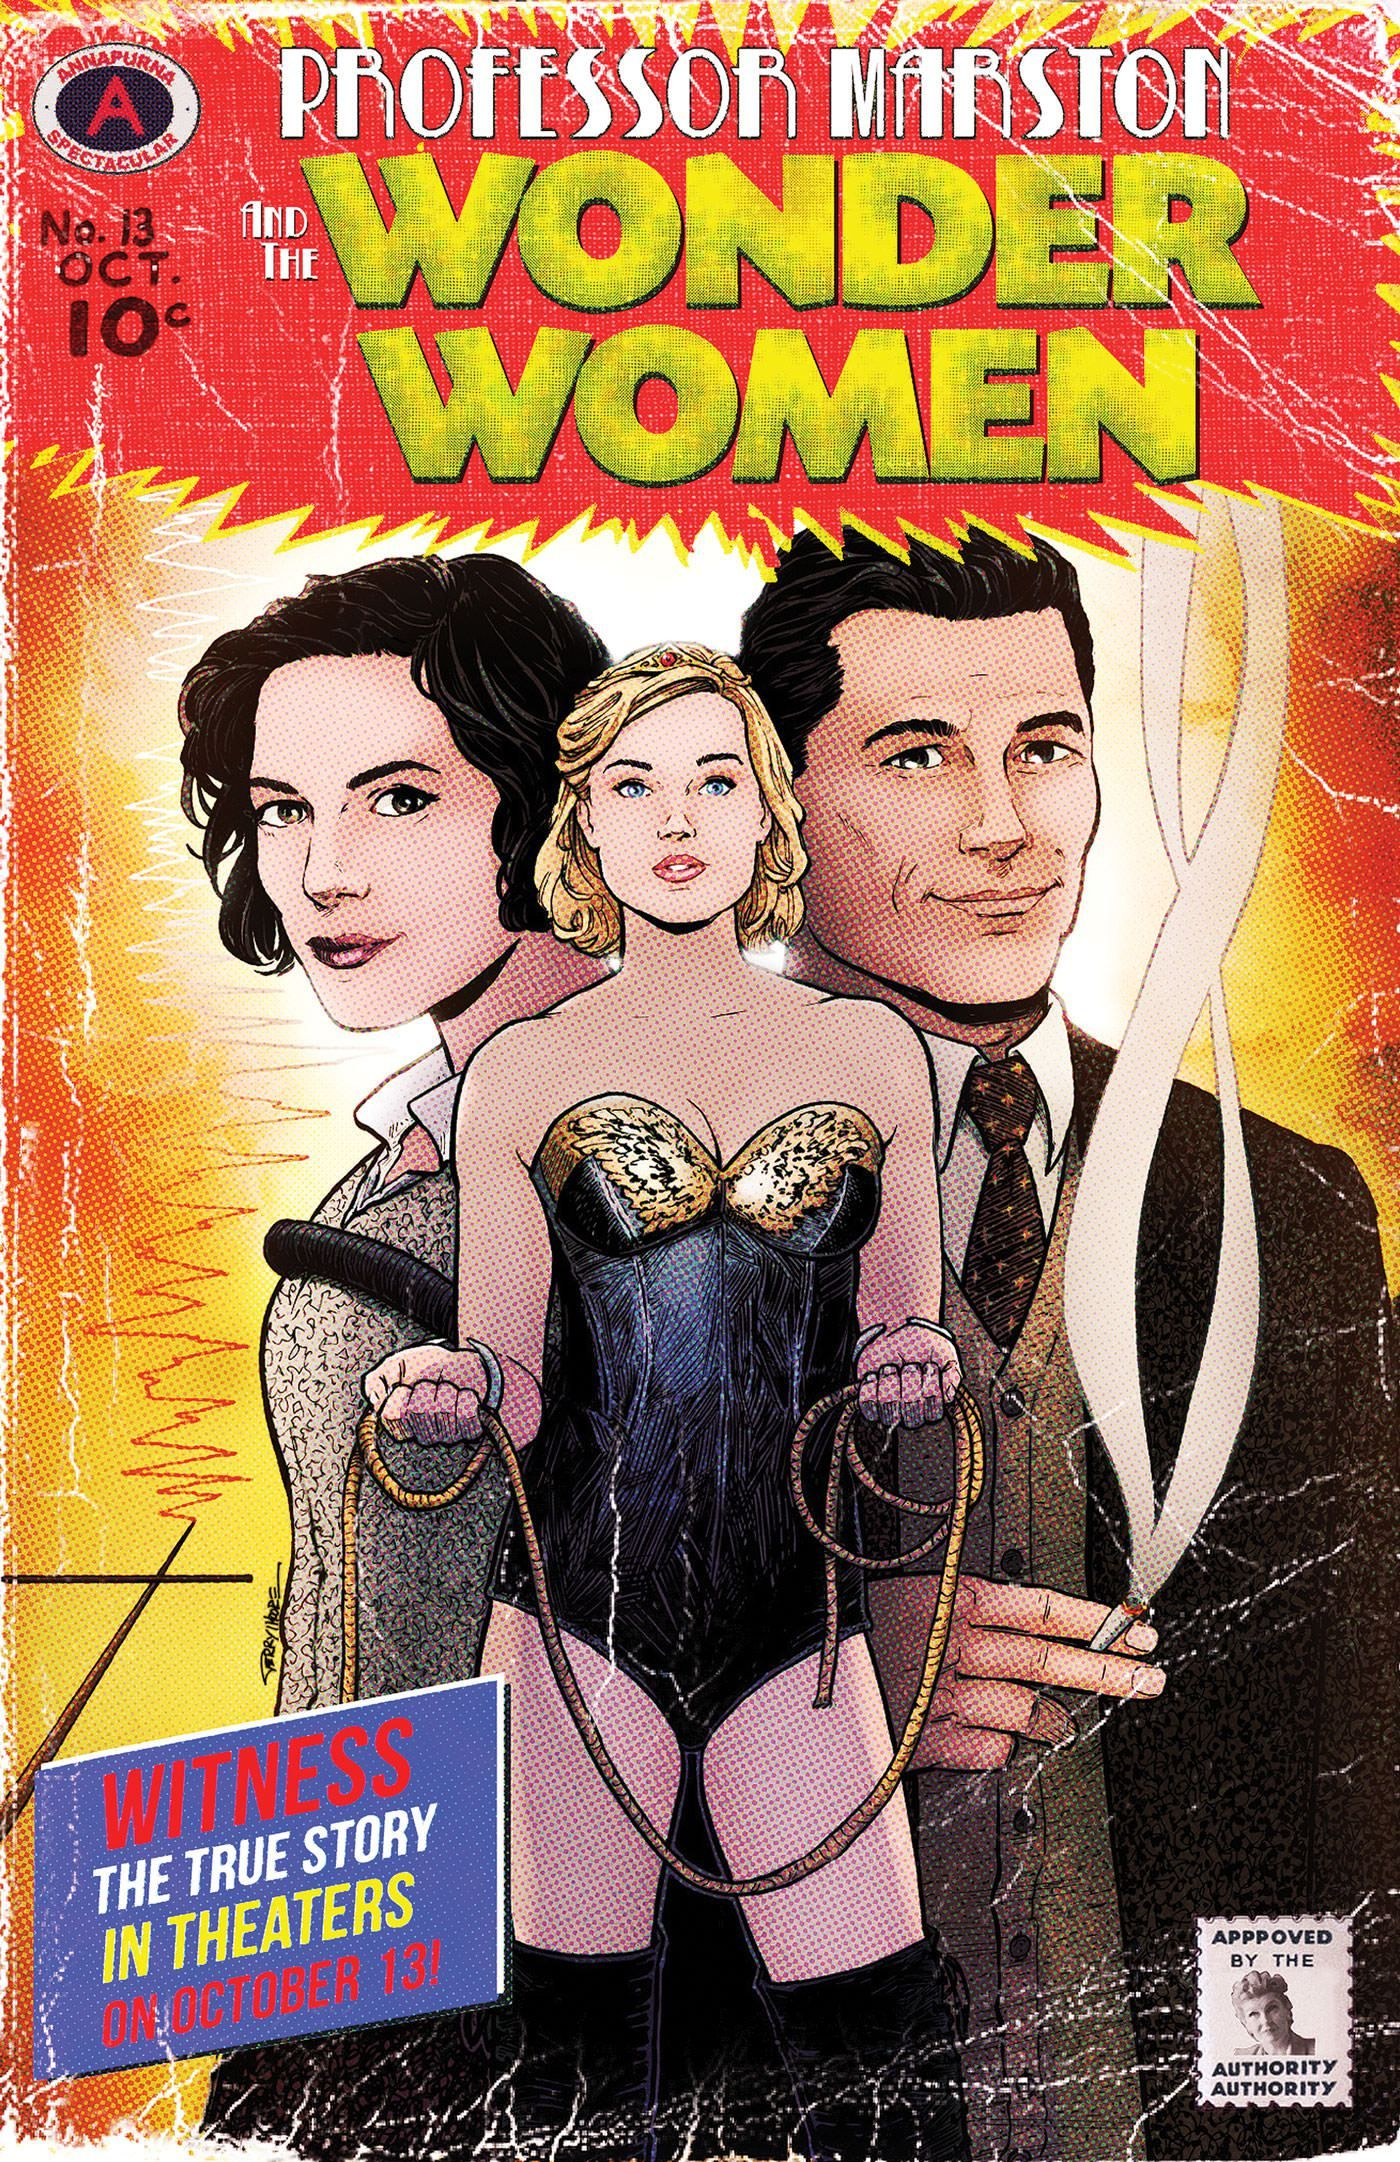 Season Film Festival: Professor Marston and The Wonder Women